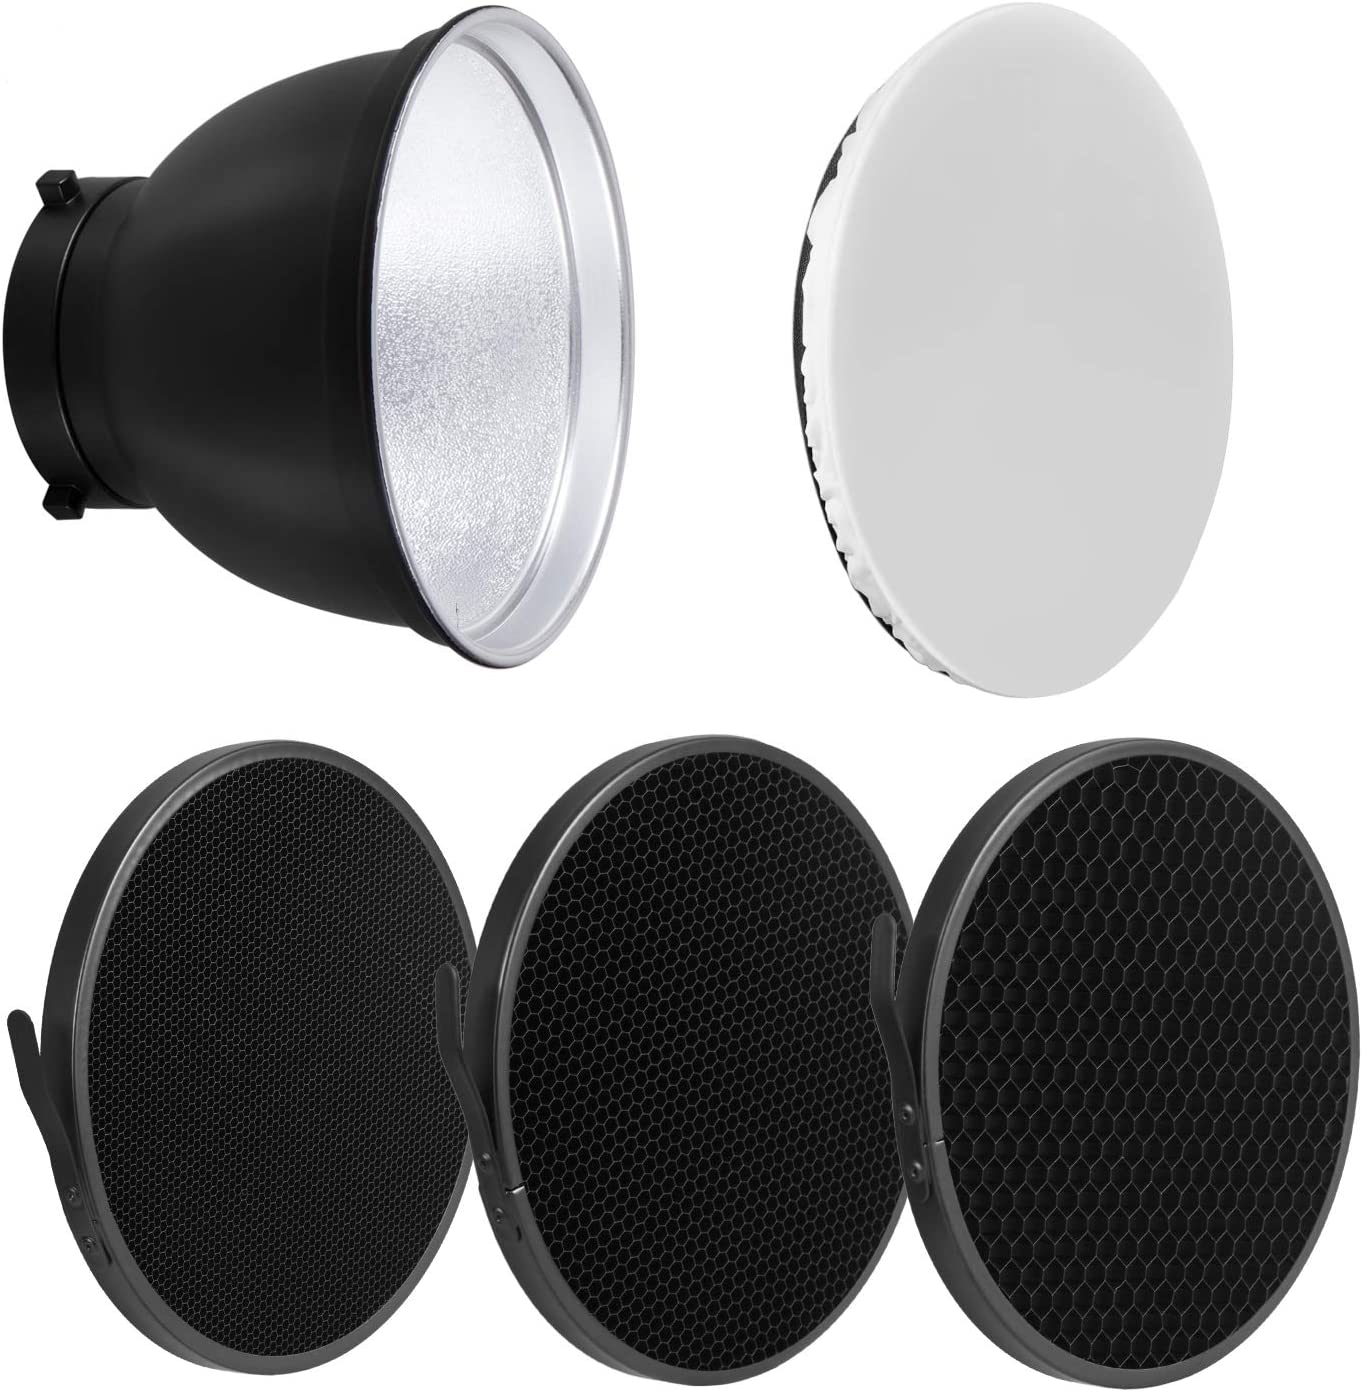 Soonpho 7 Standard Reflector Diffuser Lamp Shade Dish with 20/° //40/°// 60/° Degree Honeycomb Grid White Soft Cloth for Bowens Mount Studio Strobe Flash Light Speedlite